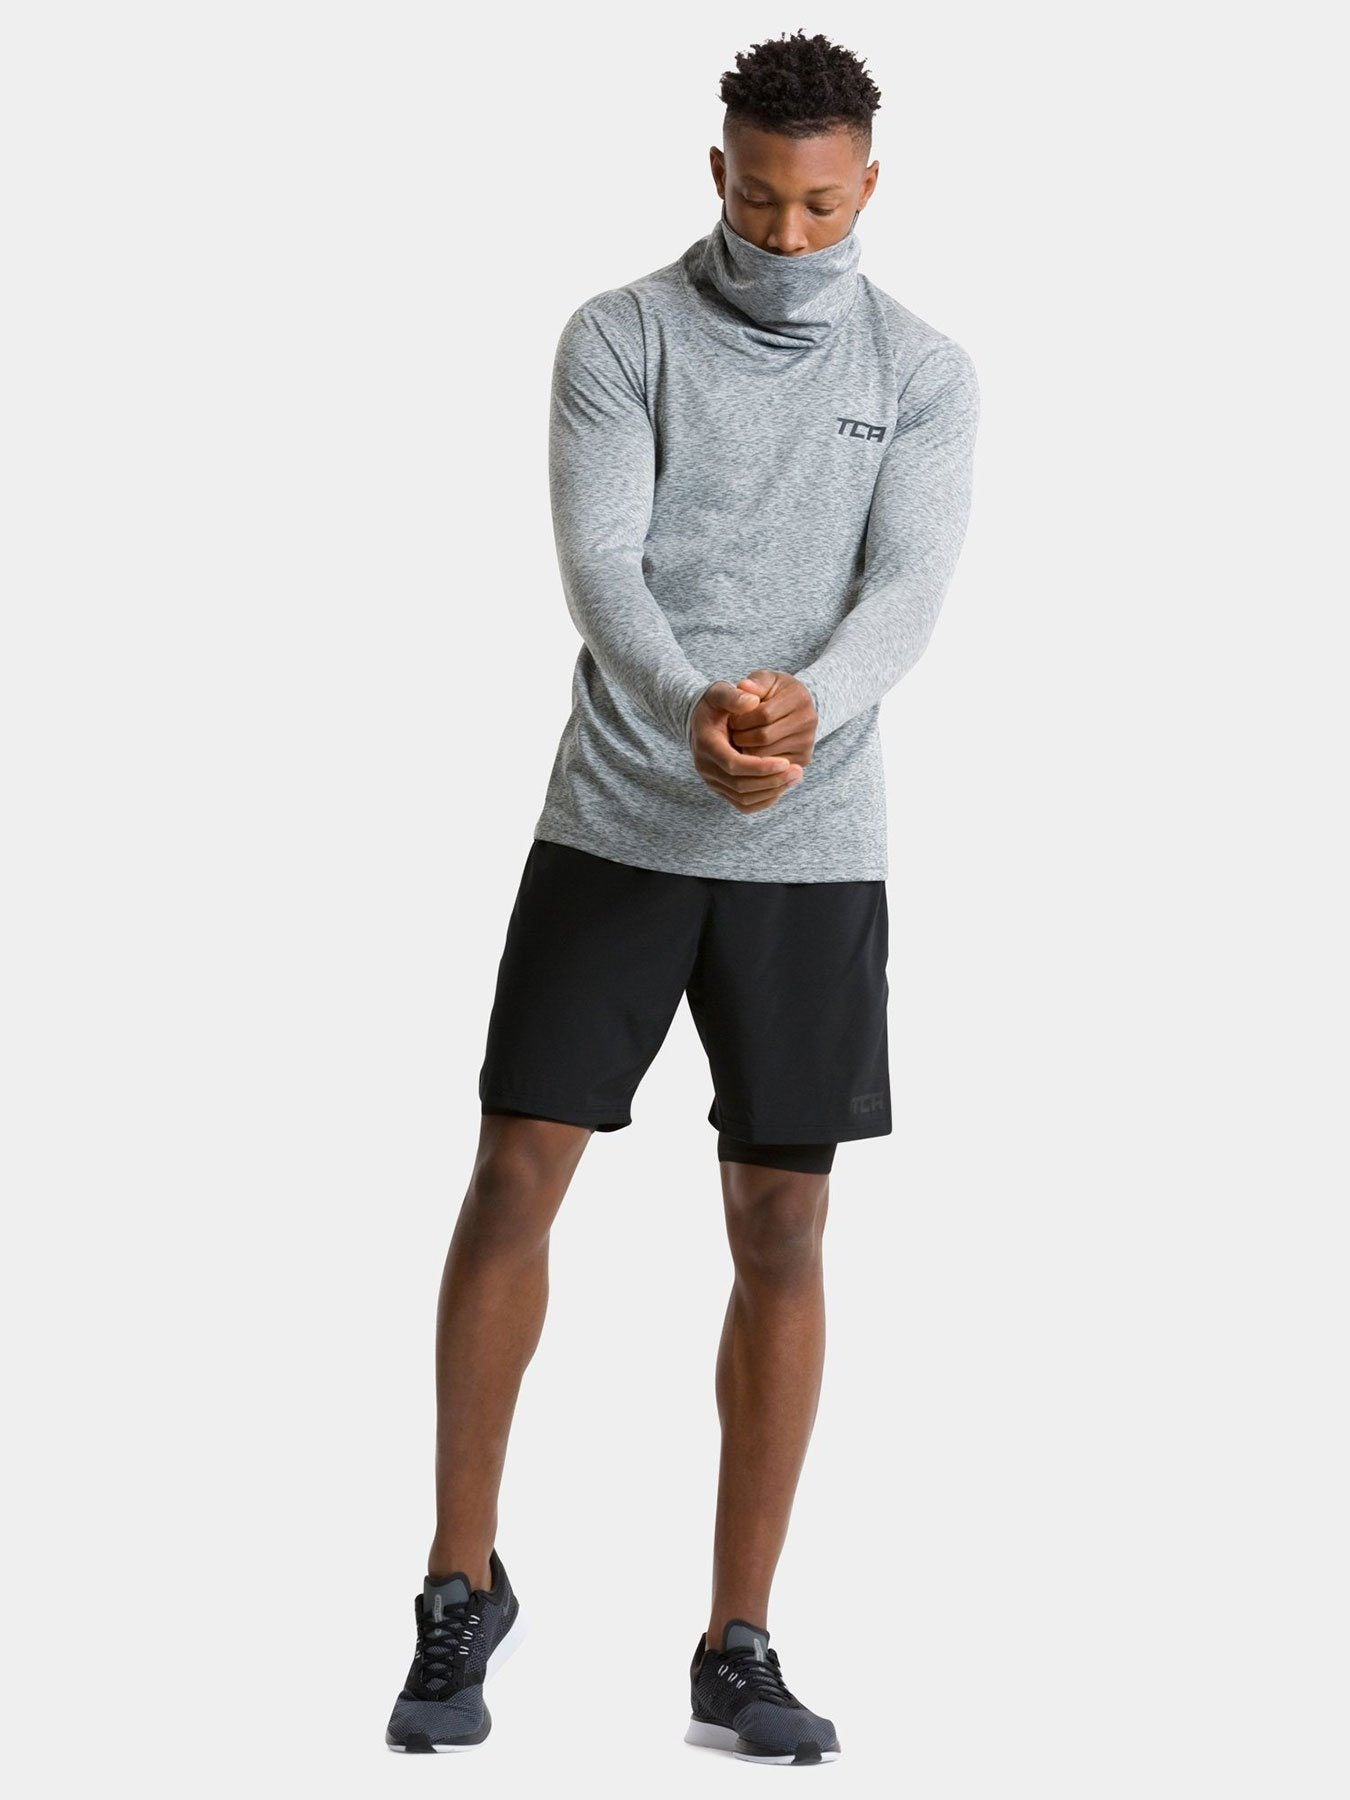 TCA Warm-Up Men's Funnel Neck Long Sleeve - Marl Grey